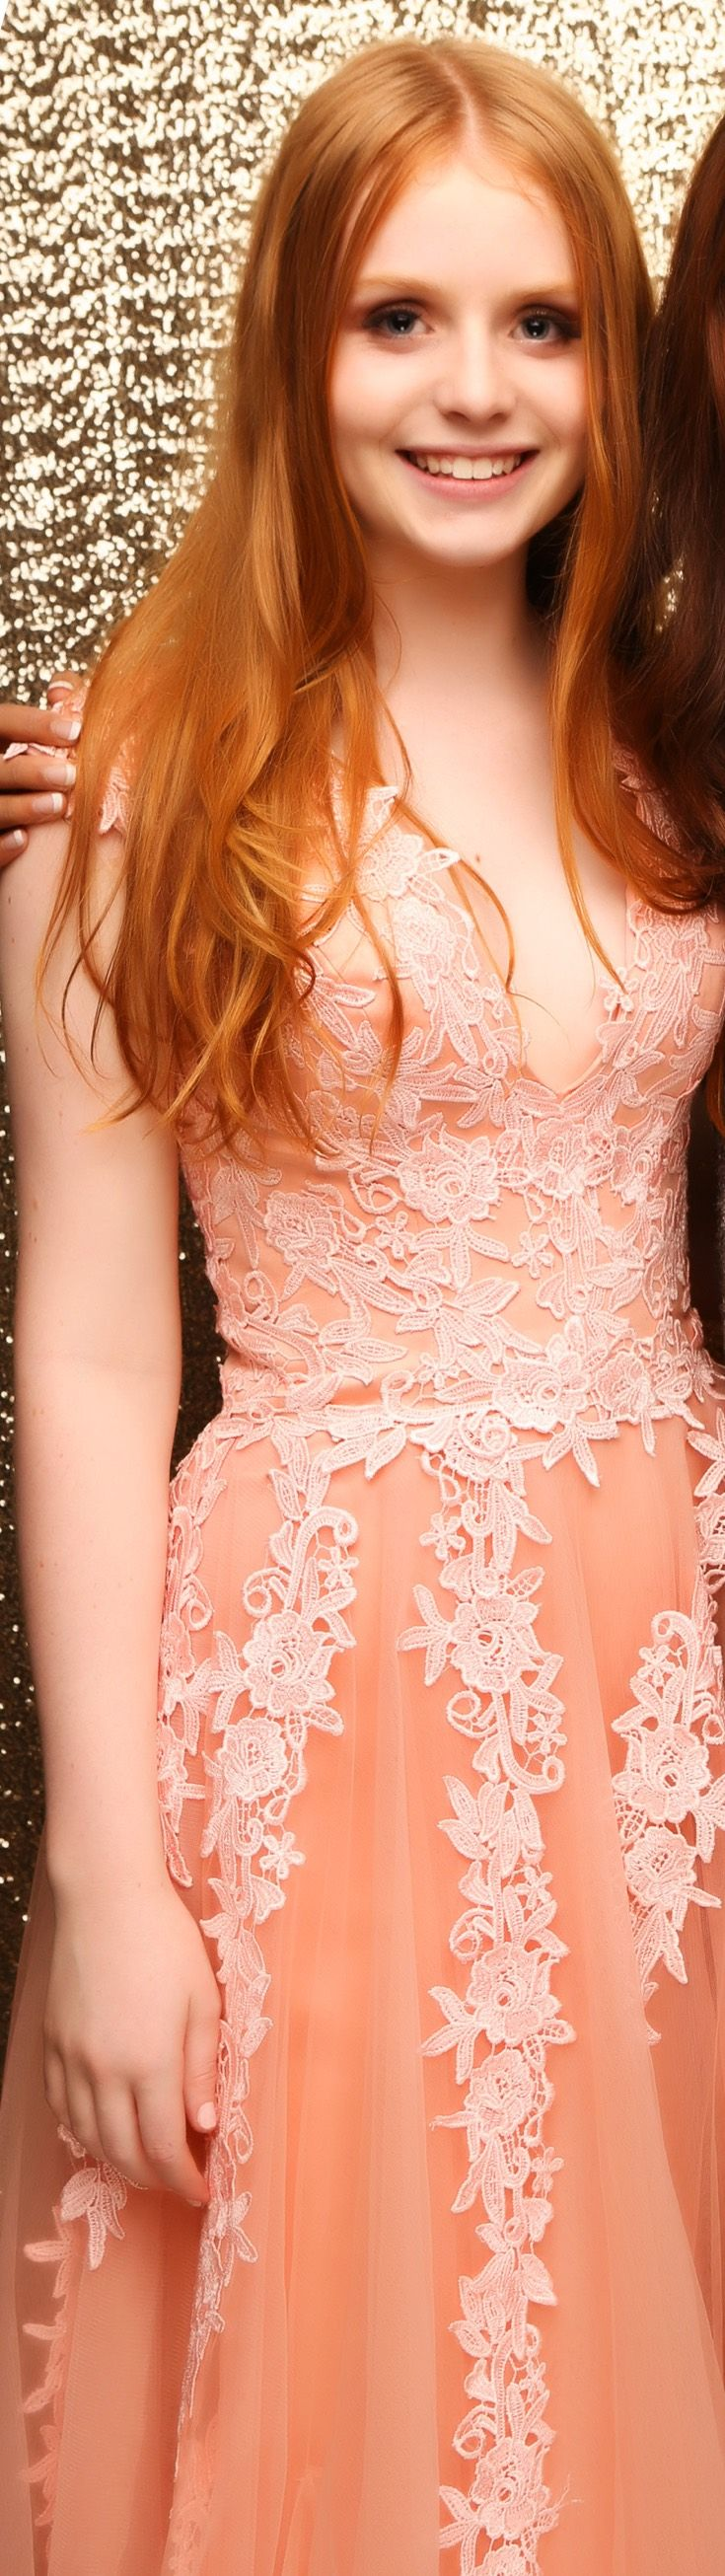 St Cuths Ball 2015. Obsessed with this incredible lace gown! www.whitedoor.co.nz